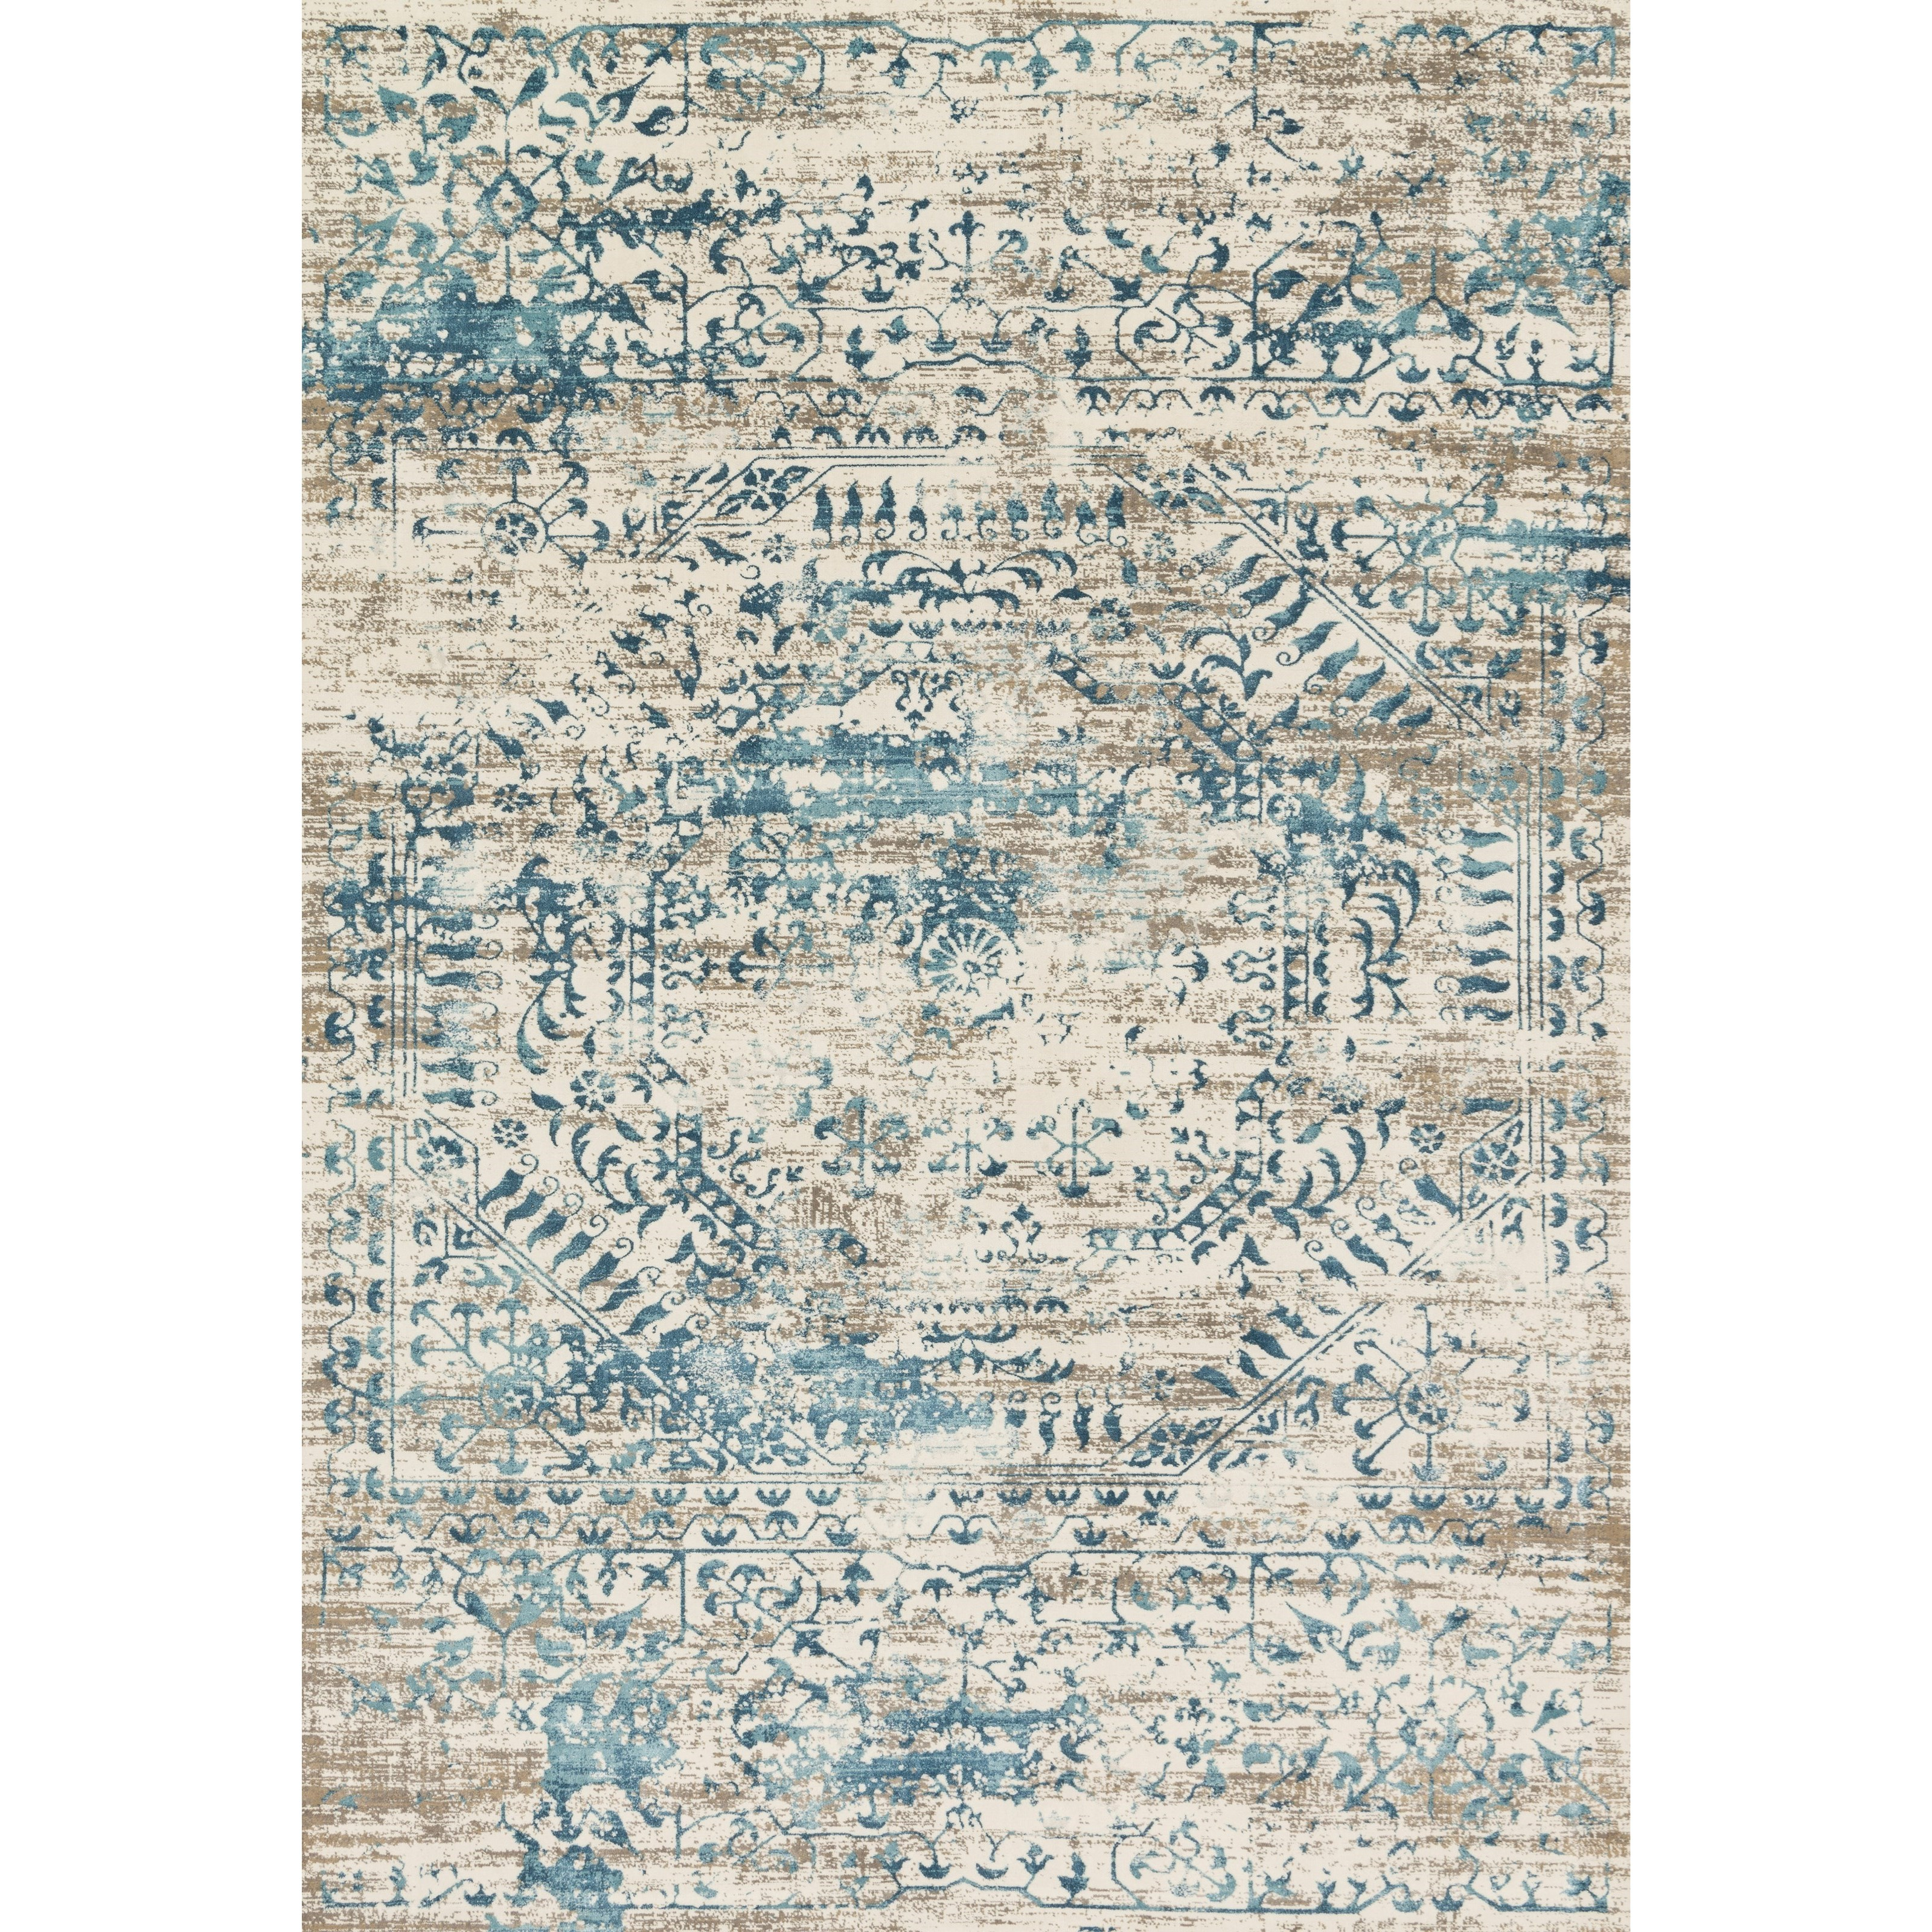 """Kingston 1'6"""" x 1'6""""  Ivory / Blue Rug by Loloi Rugs at Virginia Furniture Market"""